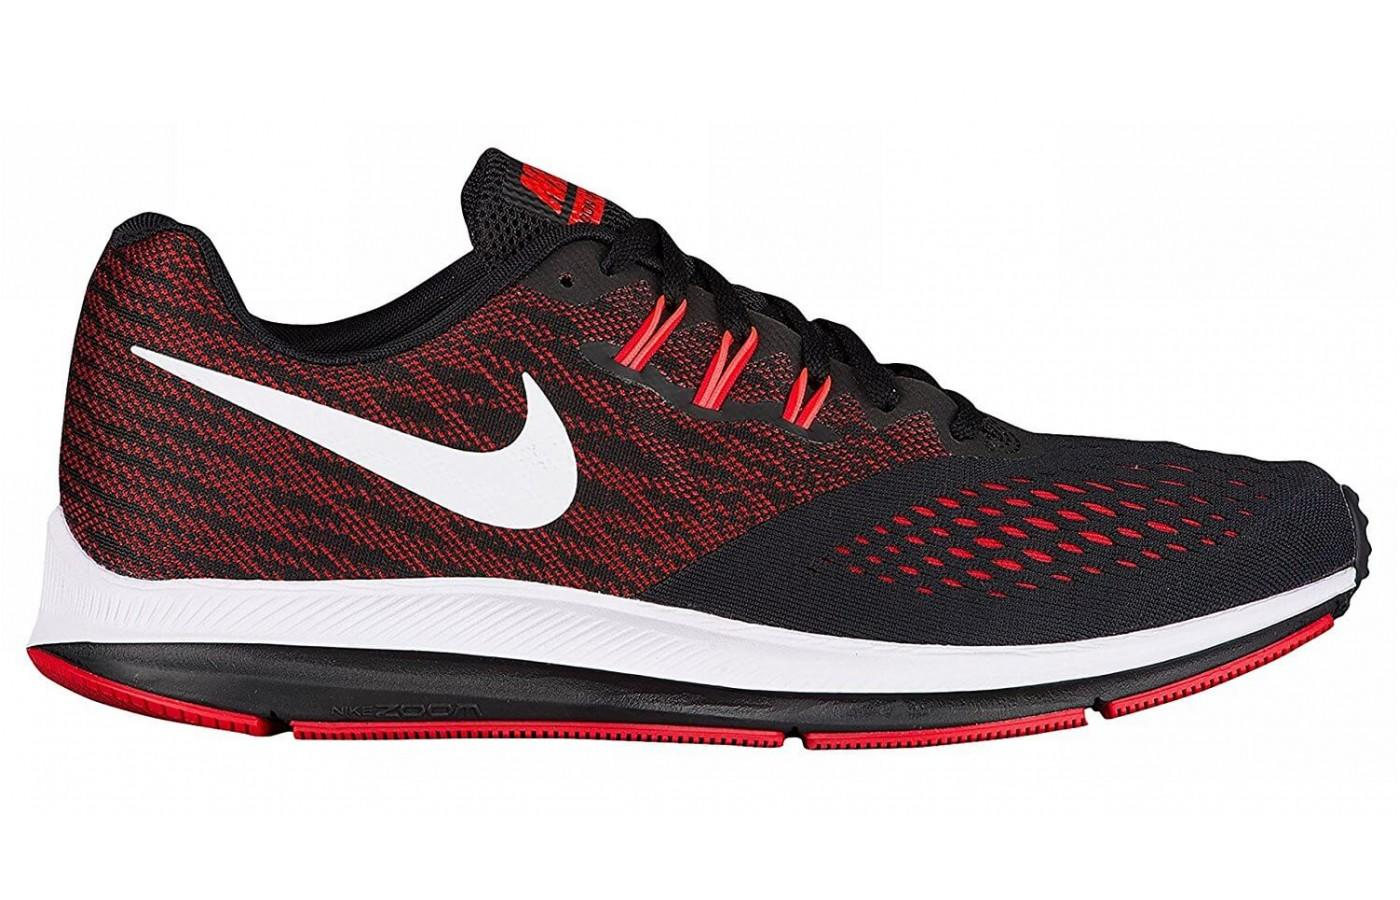 The Nike Zoom Winflow 4 is lightweight and breathable.